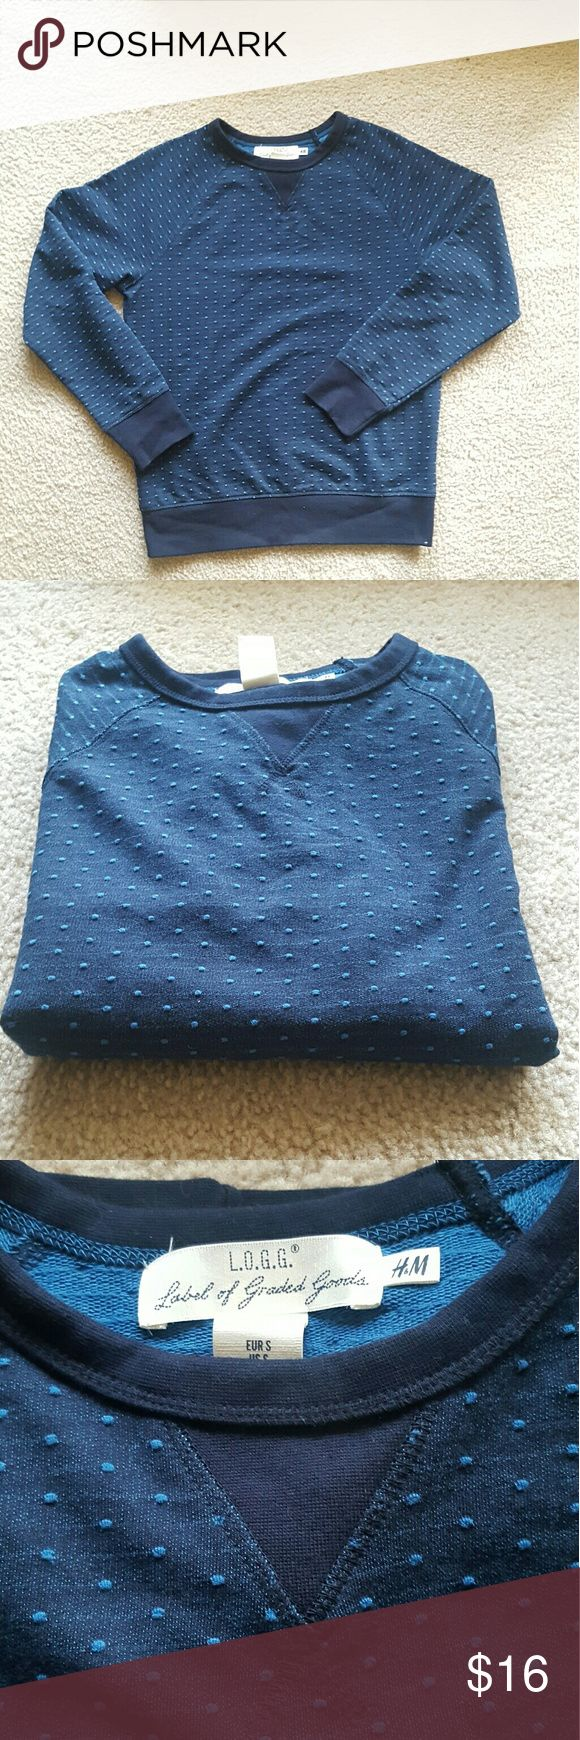 H&M Men's Sweater - S H&M Mens sweater size S.  Dark blue with lighter blue dots. Bought this 2 years ago but never worn so it's gotta go.  #Consider bundling to save on shipping***  #h&m #mens #sweater #LOGG H&M Sweaters Crewneck